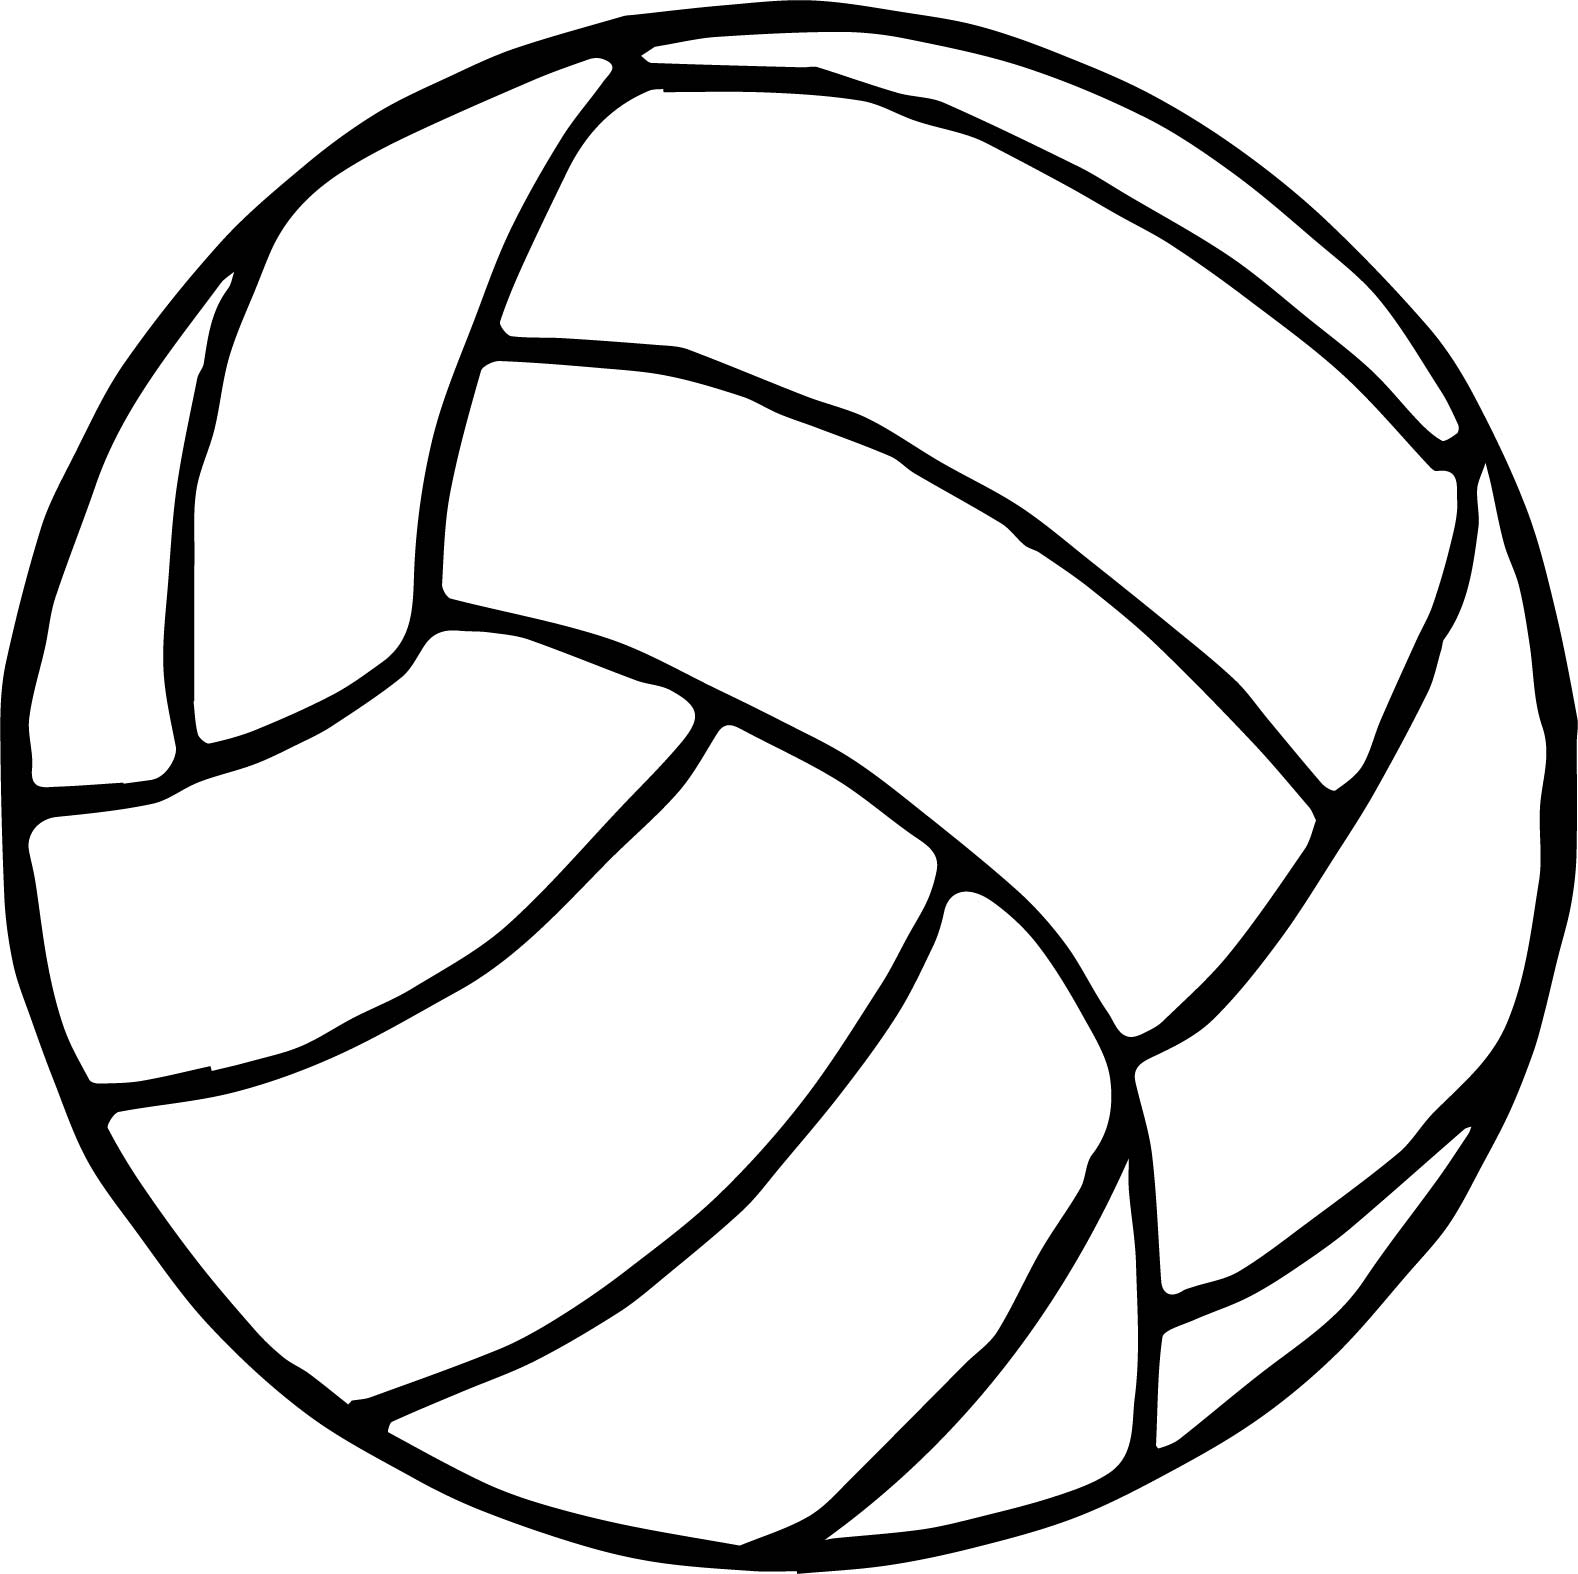 1578x1574 Volleyball Coloring Page Free Printable Pages General To Print